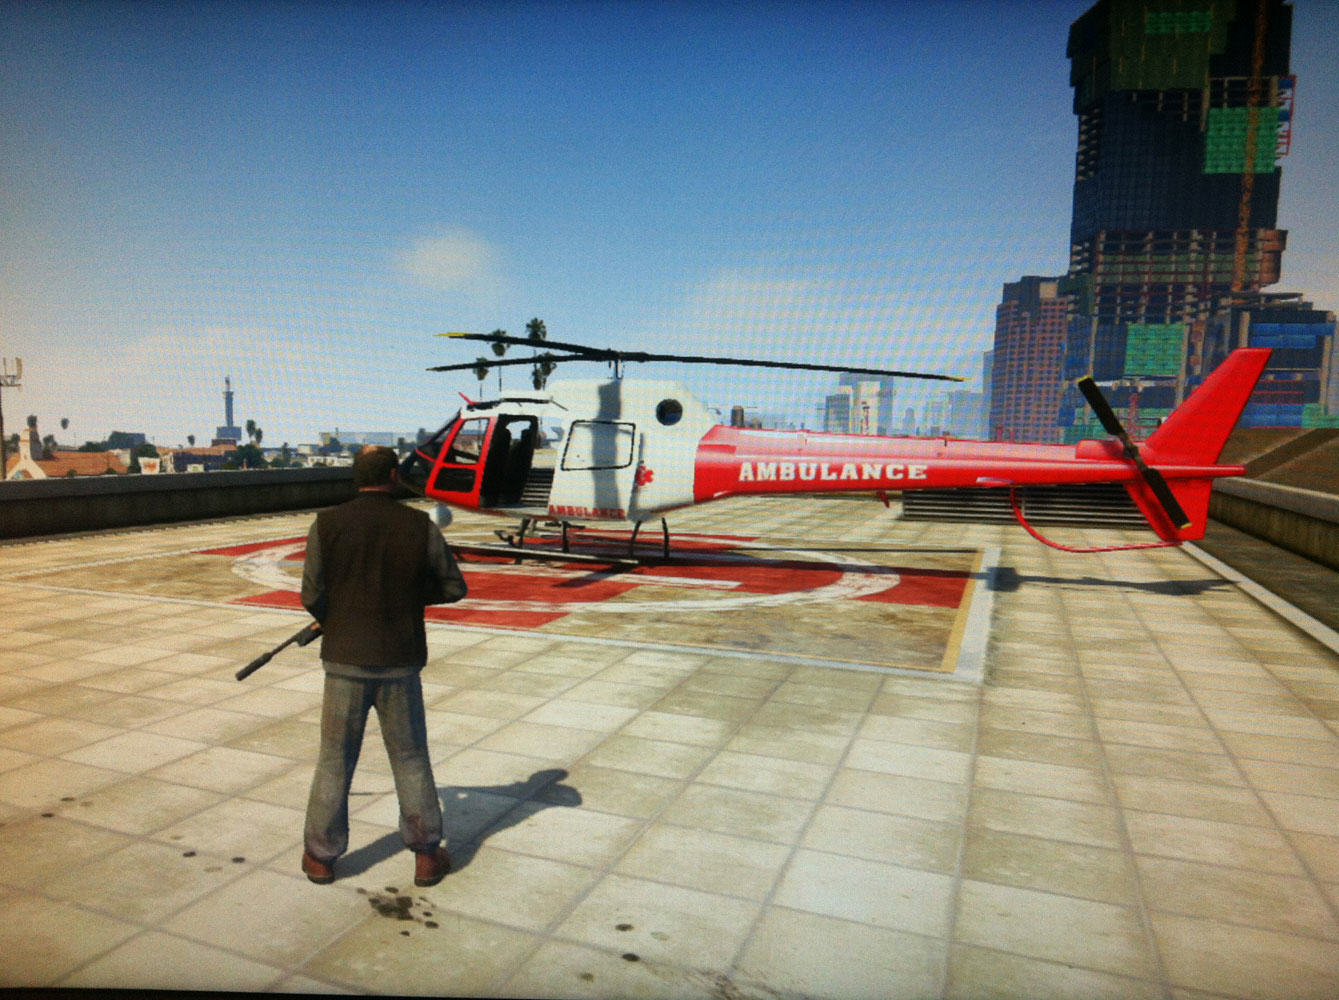 gta v helicopter location 4 Police Hunt For Bad Santa Who Stole Helicopter